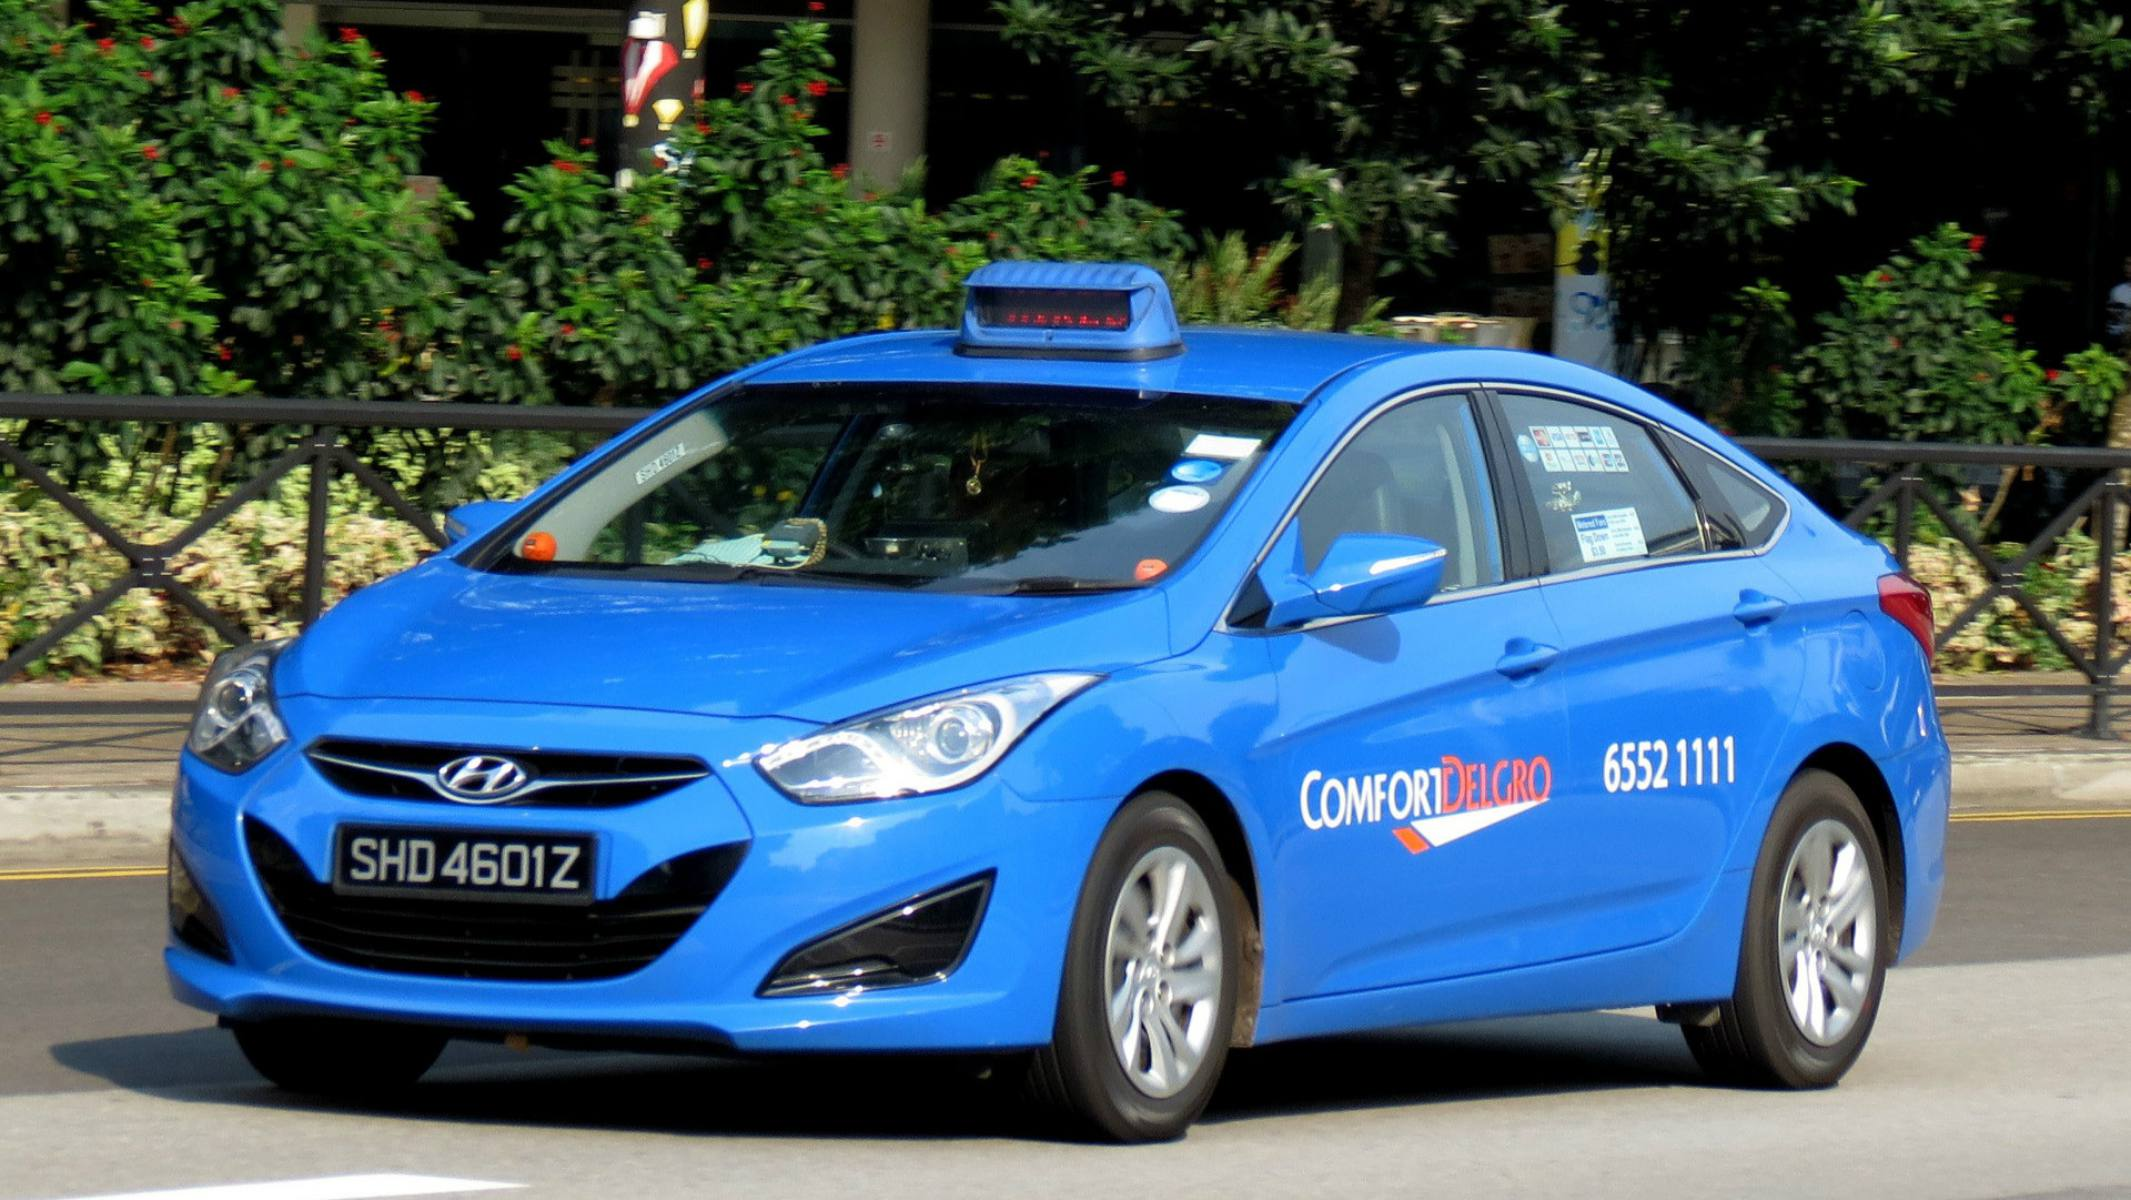 Singapore's competition agency to review the proposed Uber-ComfortDelGro alliance